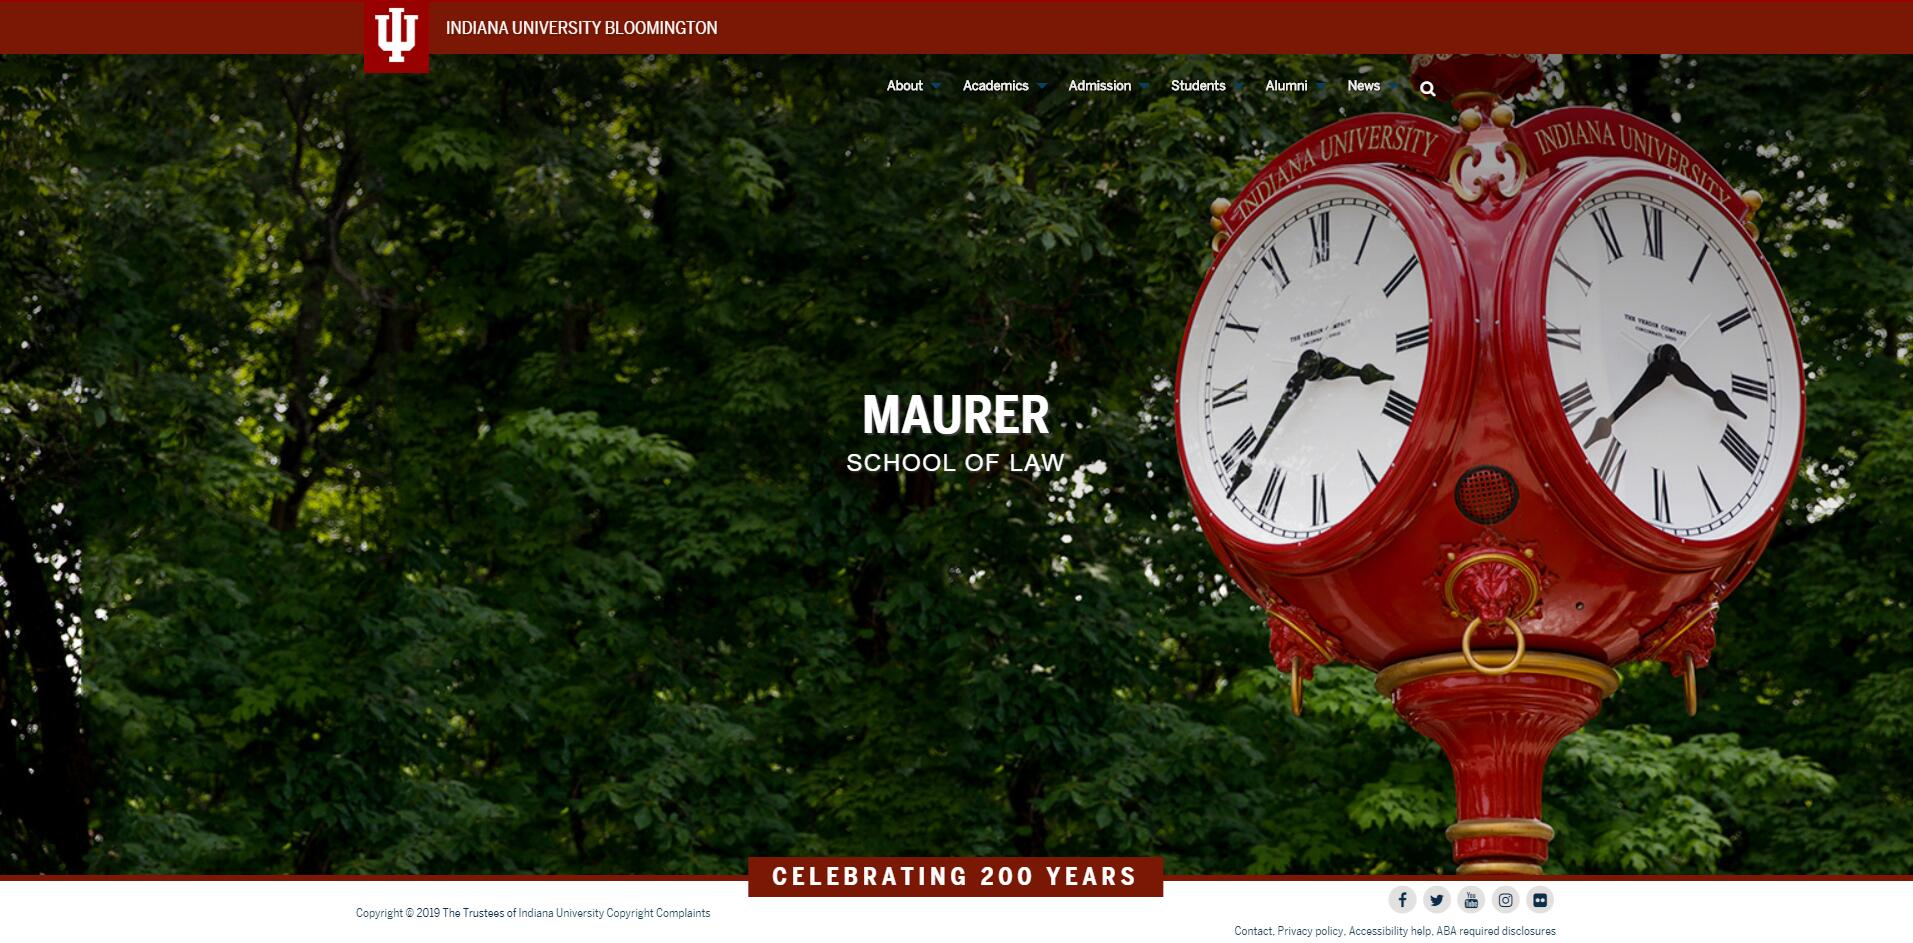 The Maurer School of Law at Indiana University--Bloomington